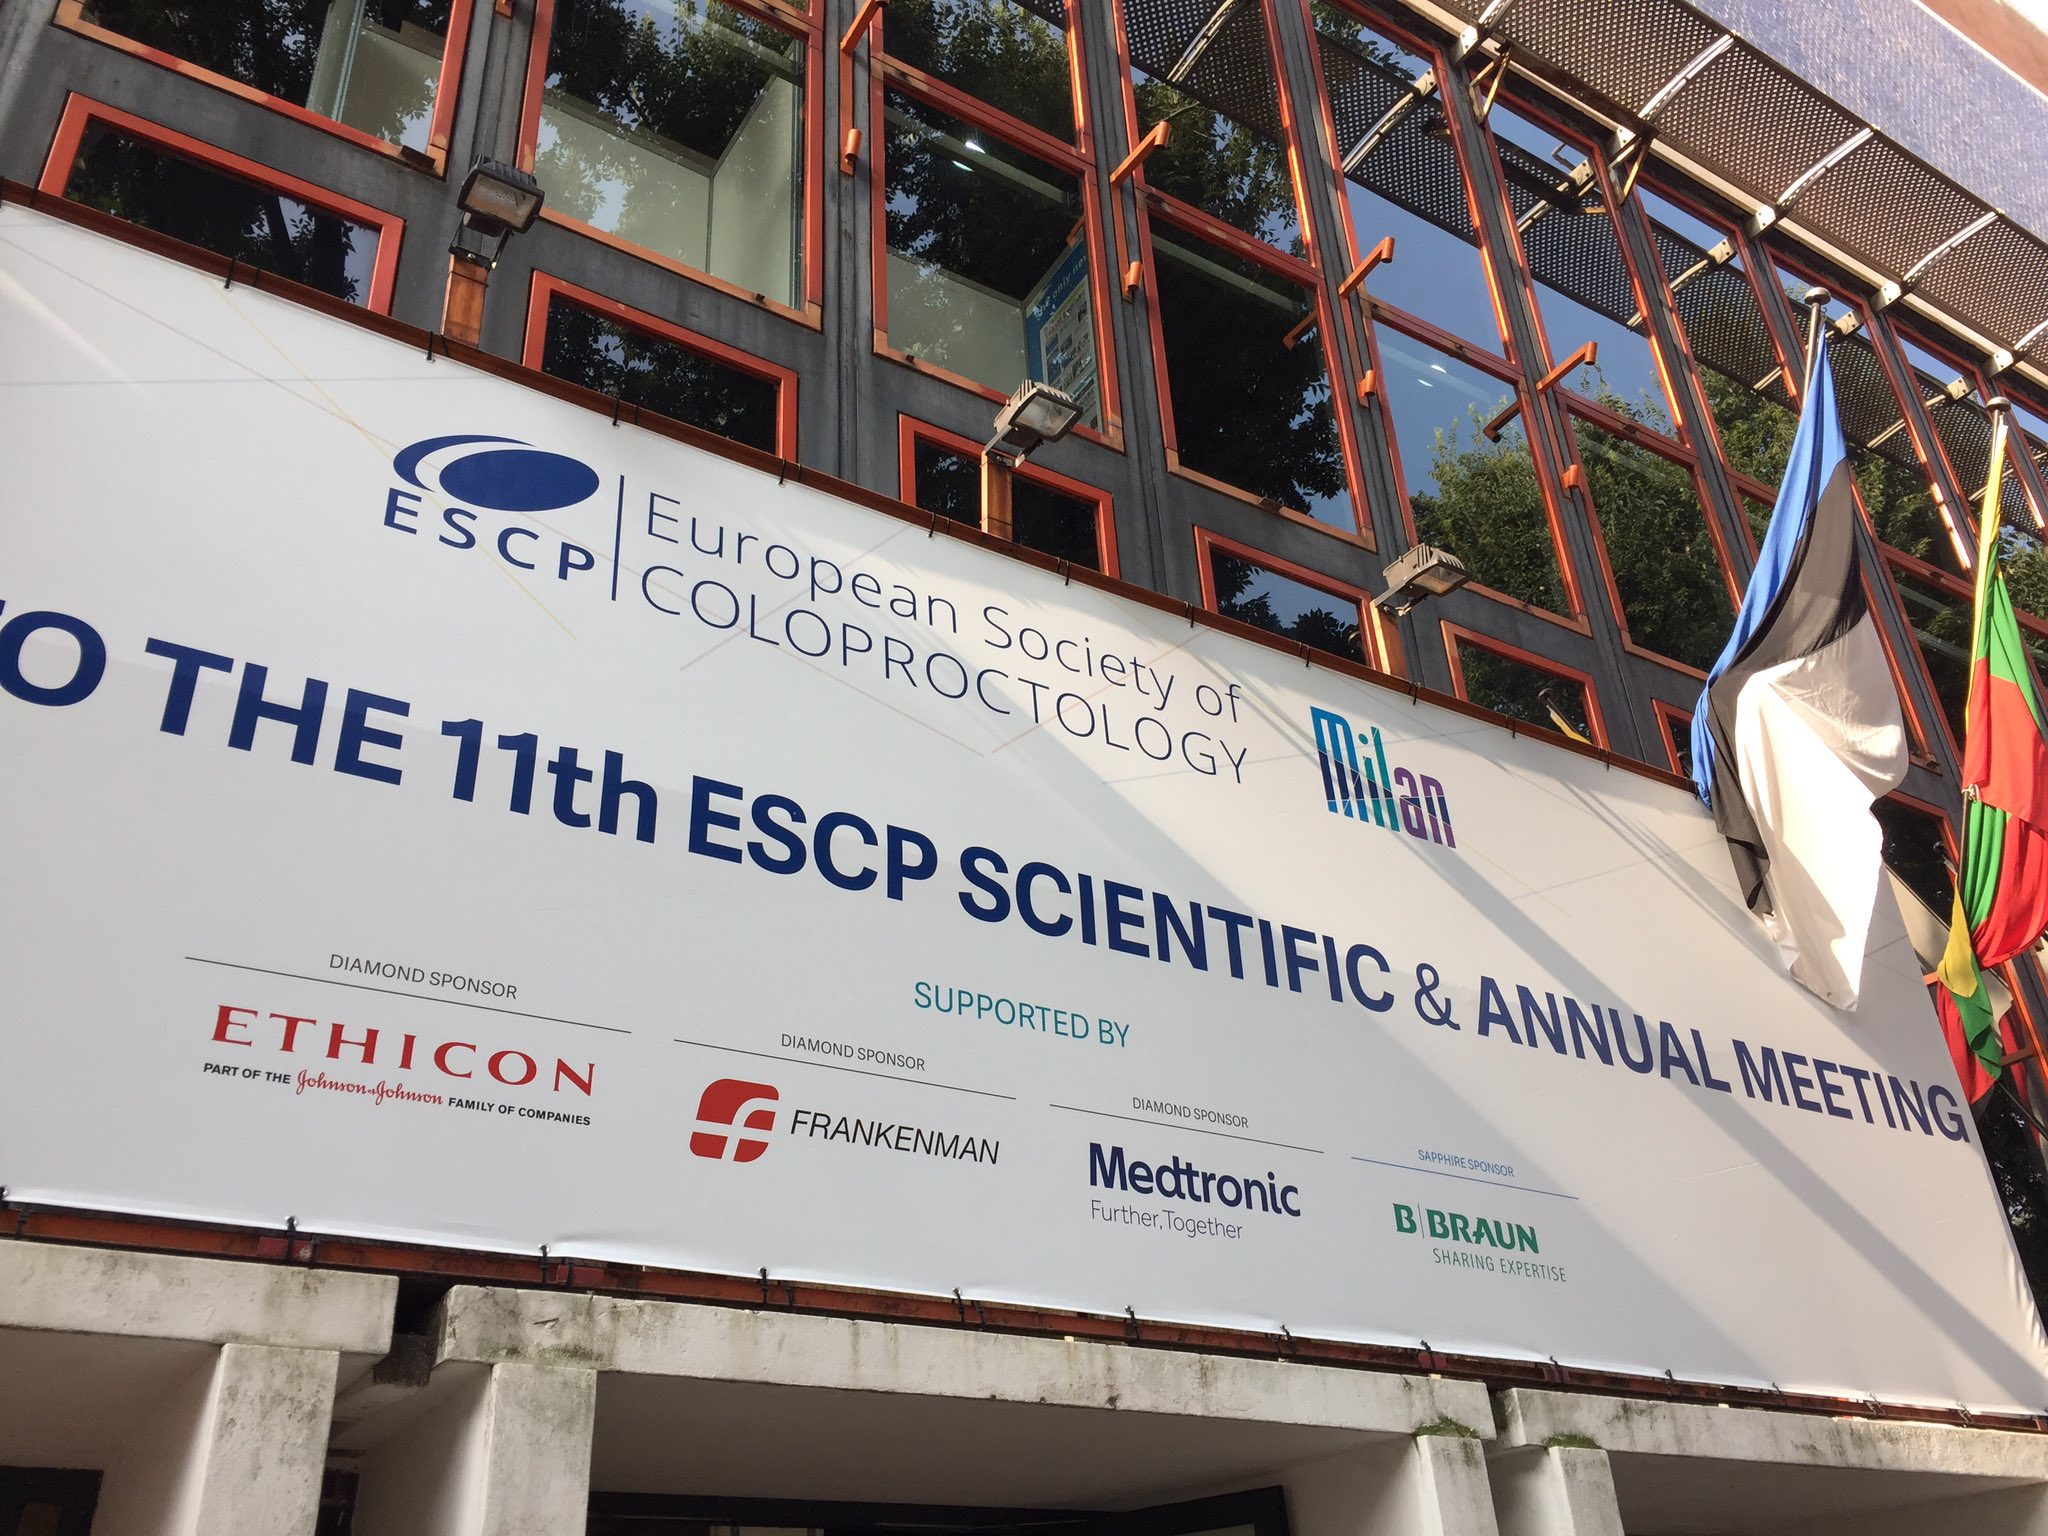 This morning at #escp2016 in Milan https://t.co/XzonYdn8L9